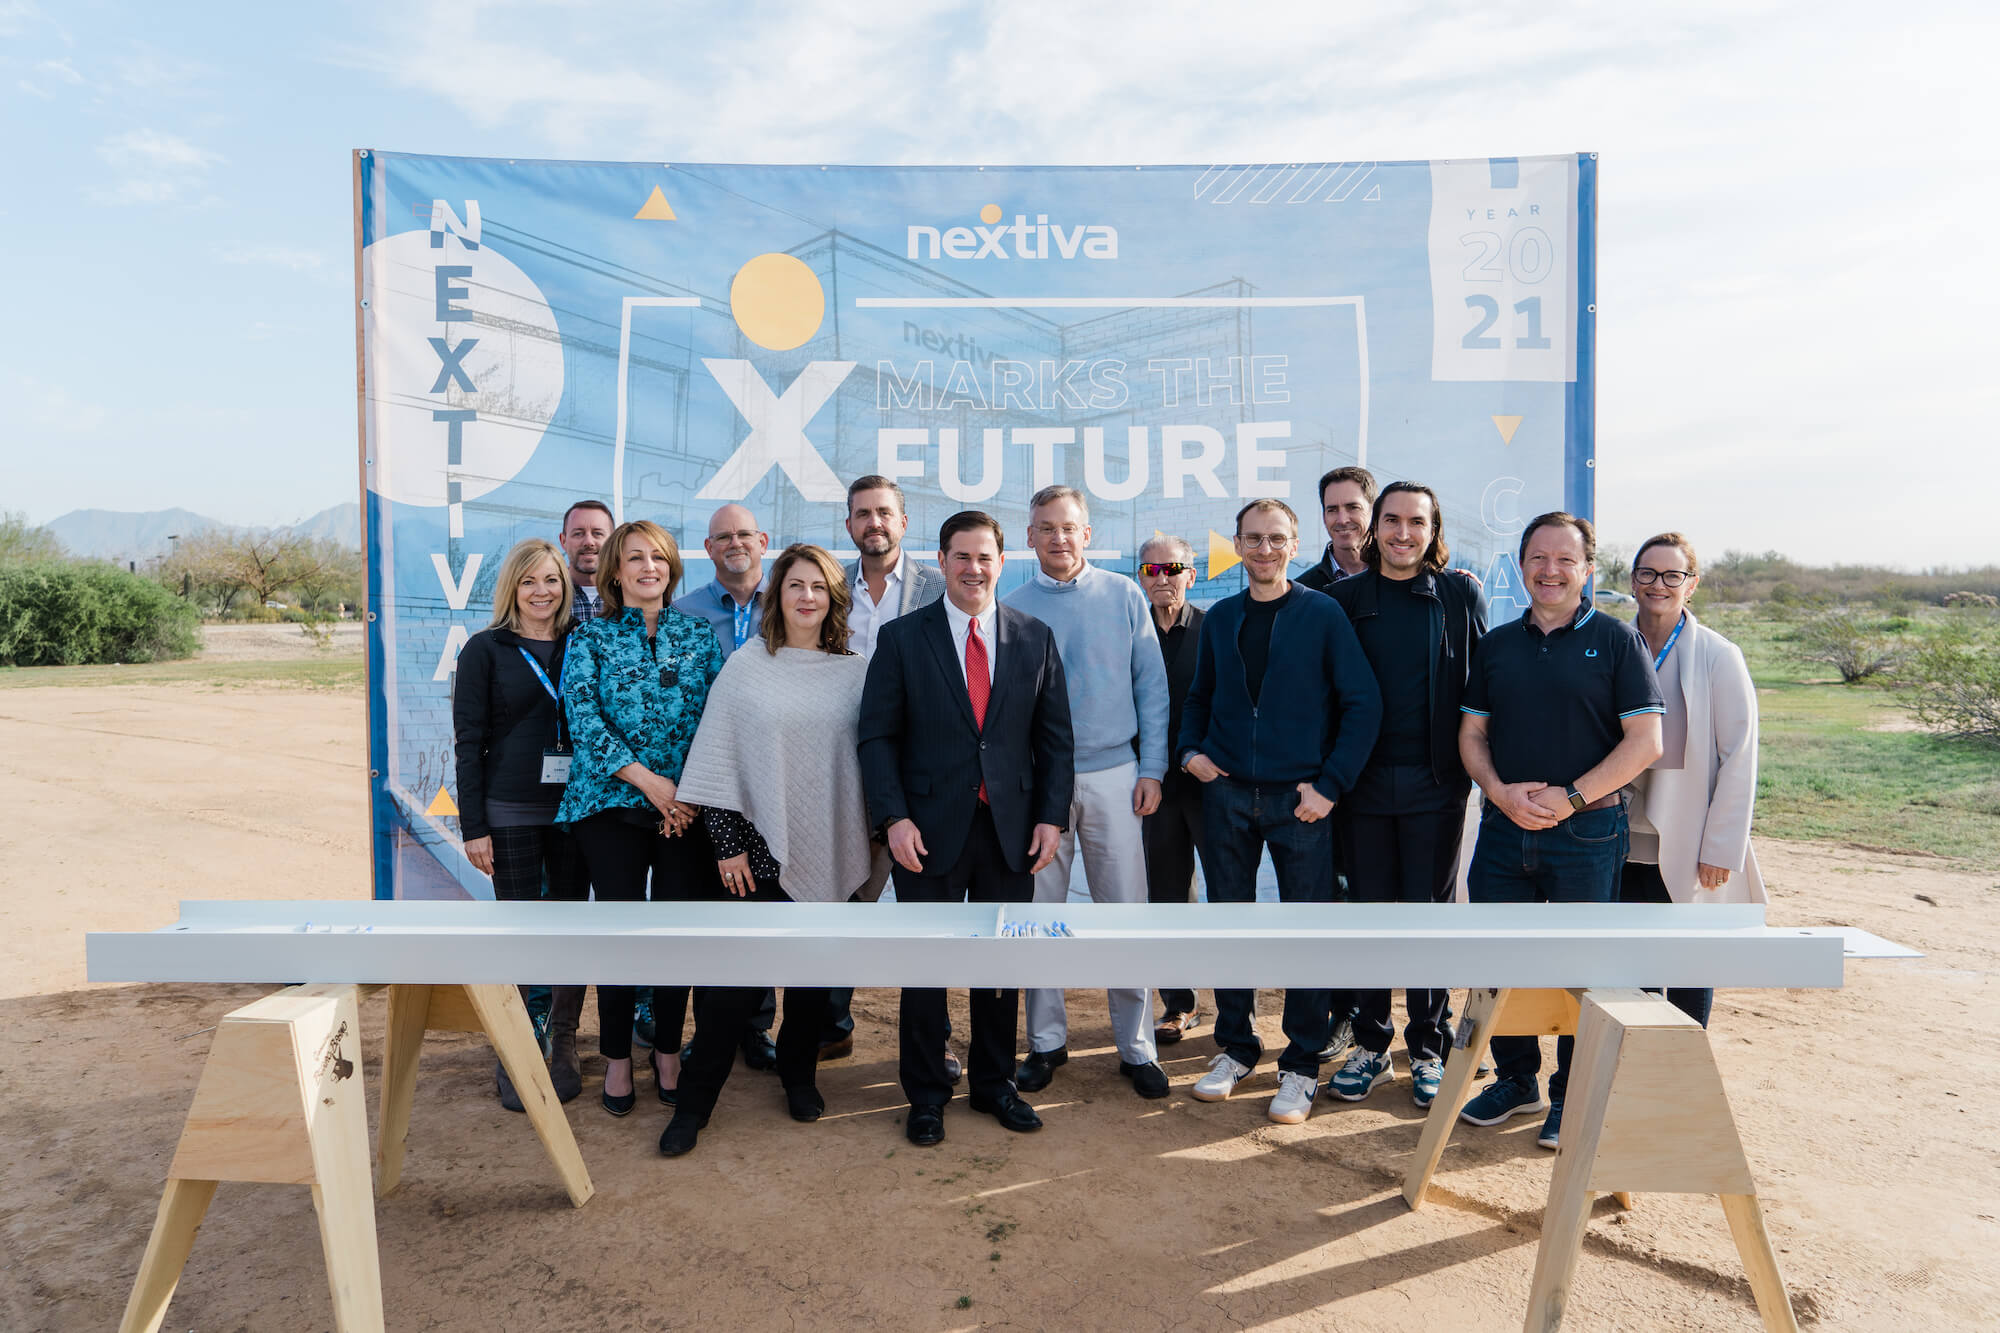 Nextiva's Leadership Team with Arizona Governor Doug Ducey